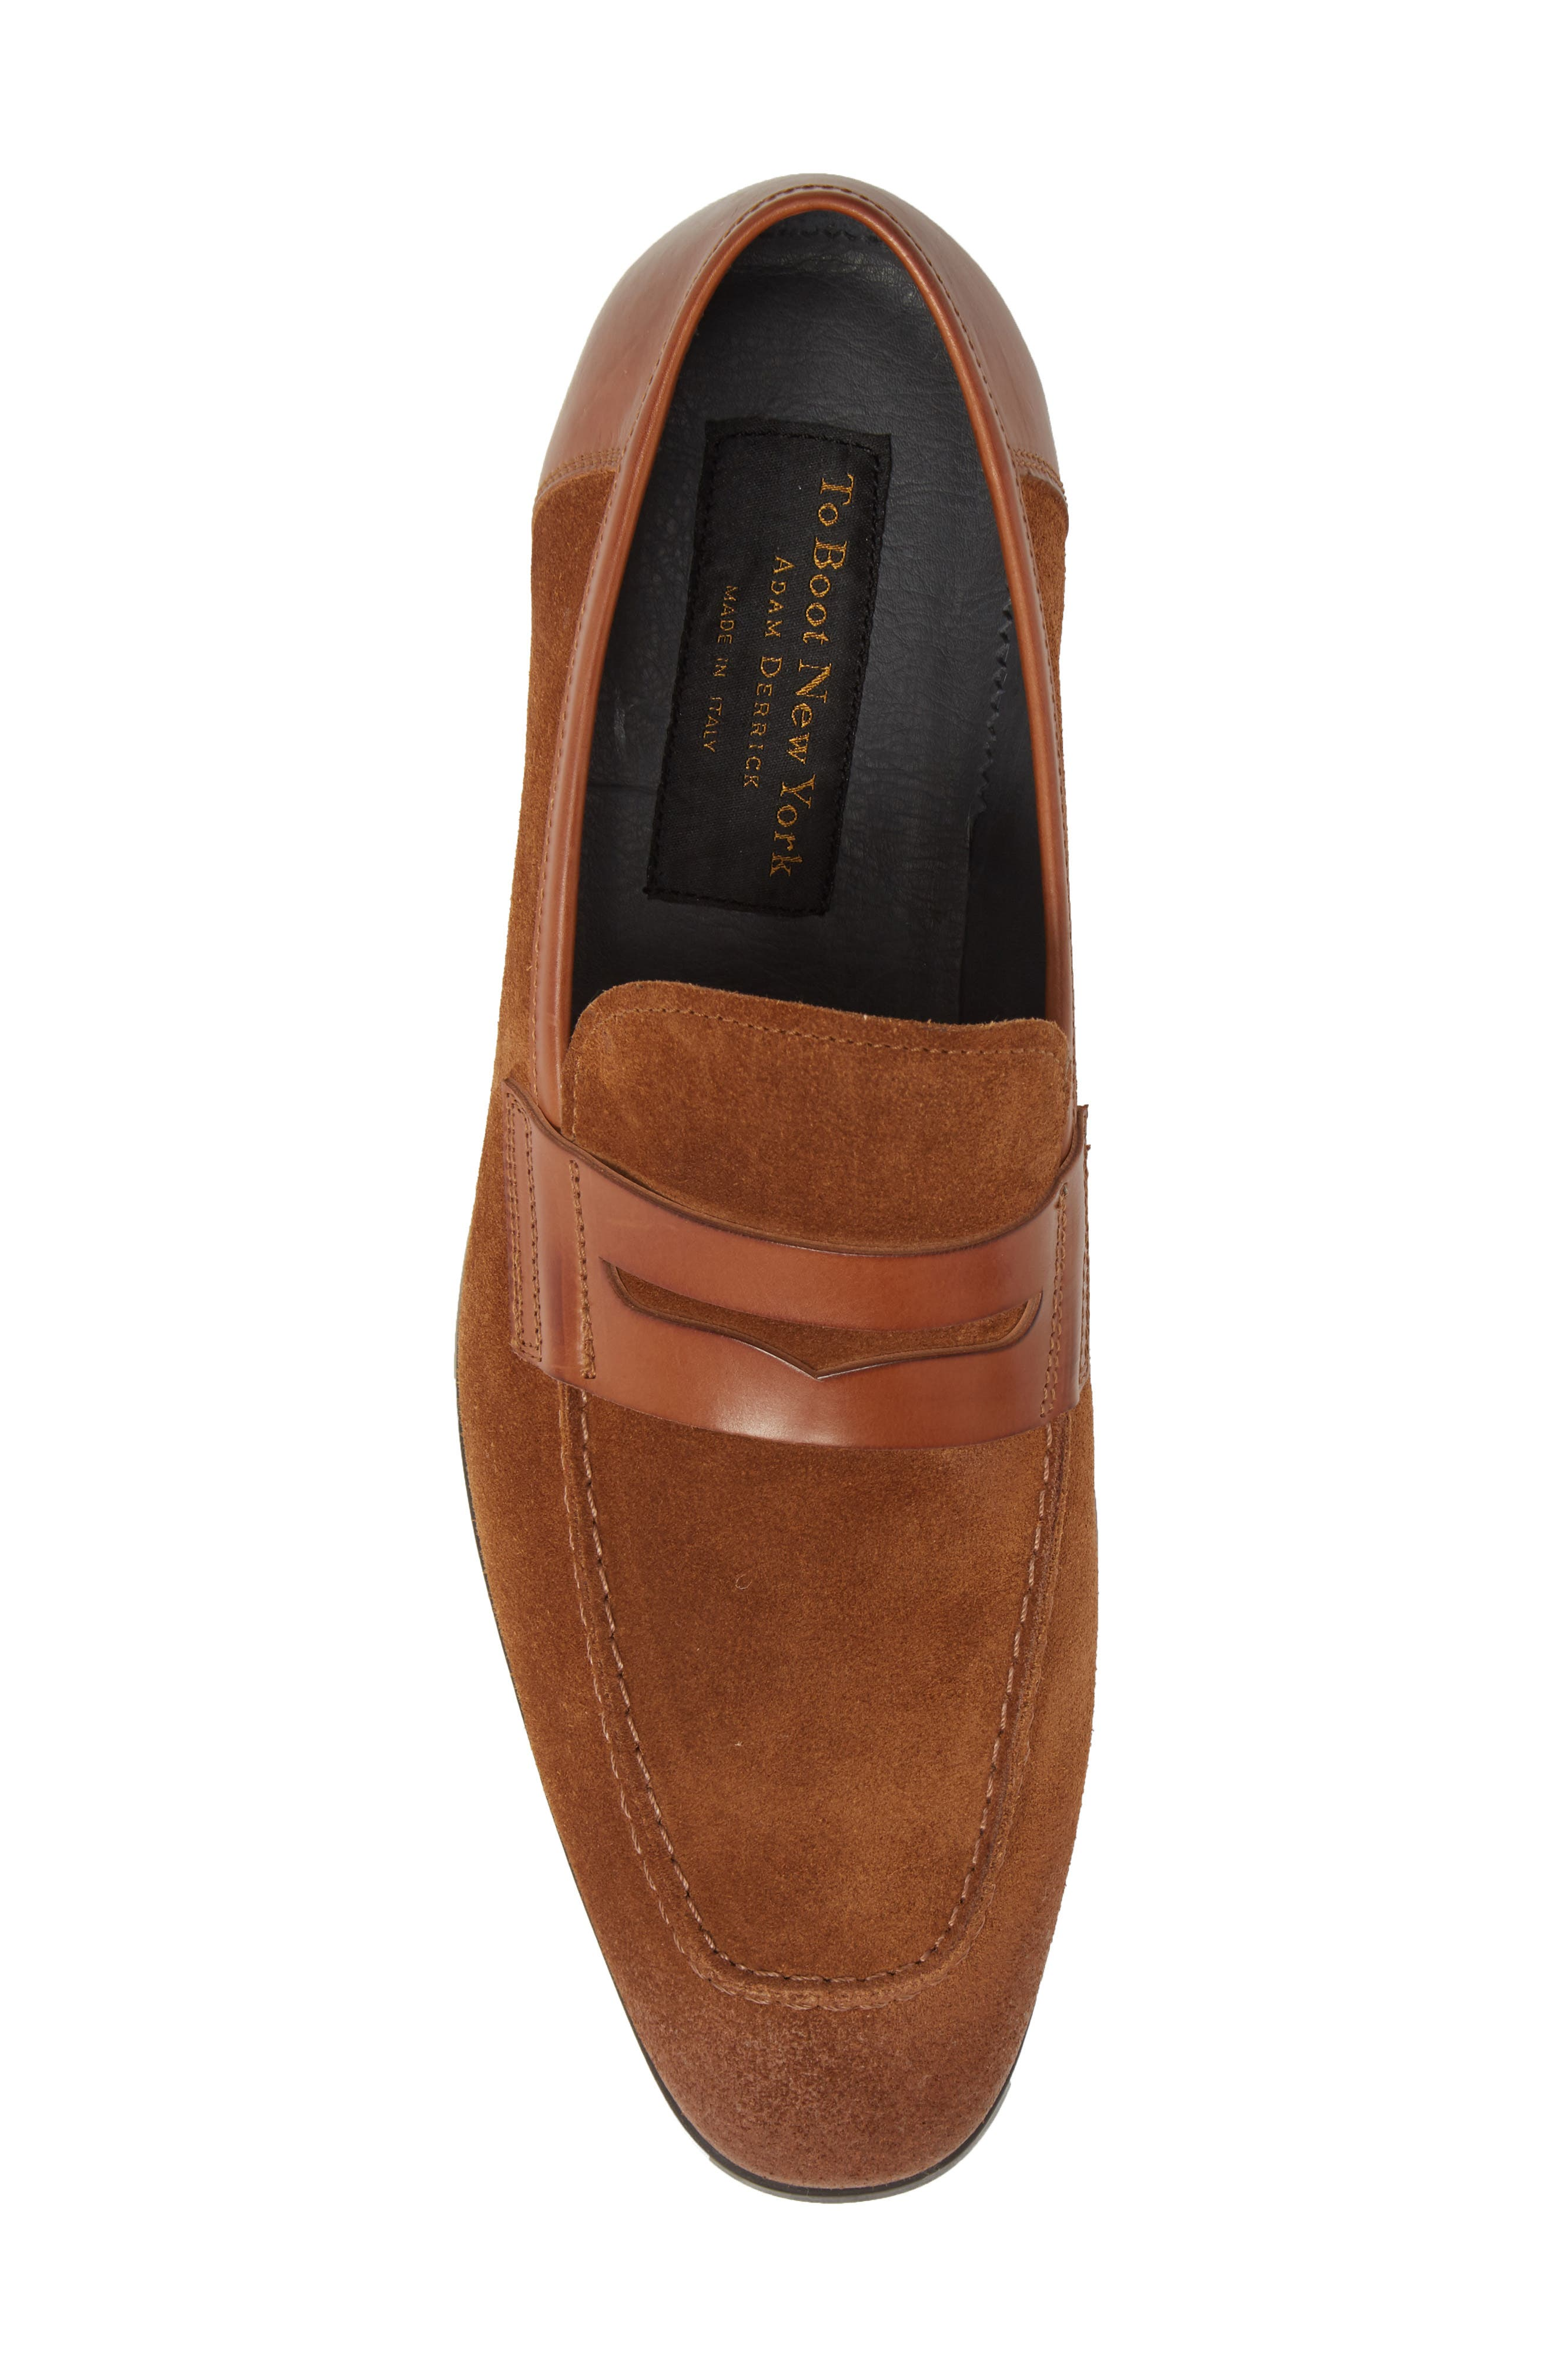 Powell Penny Loafer,                             Alternate thumbnail 5, color,                             Cognac/ Tan Suede